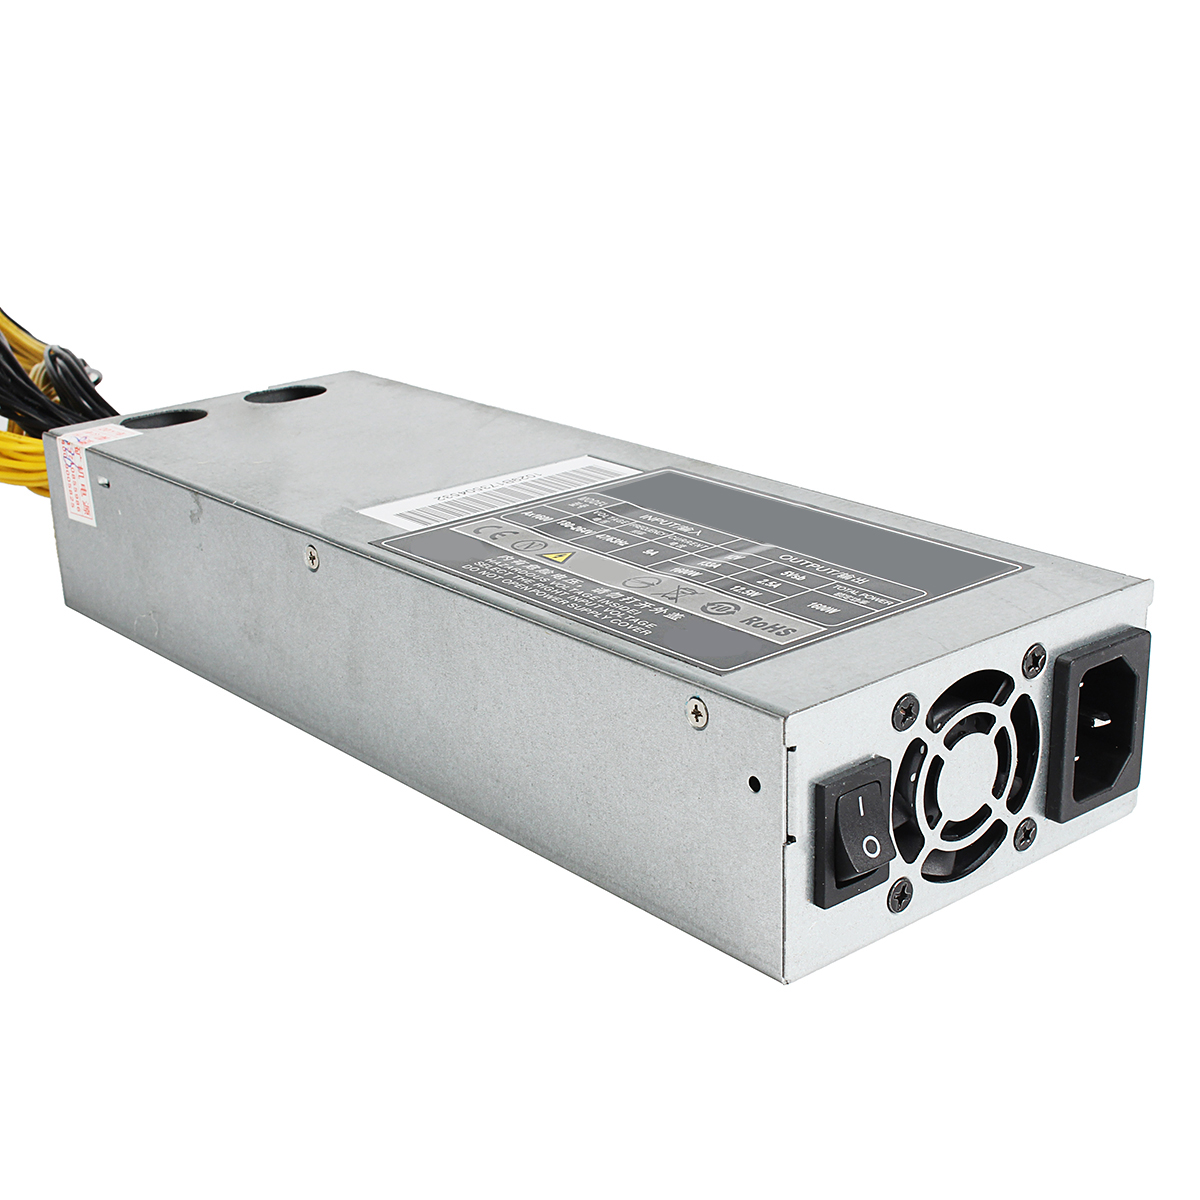 1600W Mining Power Supply For A6 A7 S7 S9 T9 E9 Ethereum Antminer Miner Machine